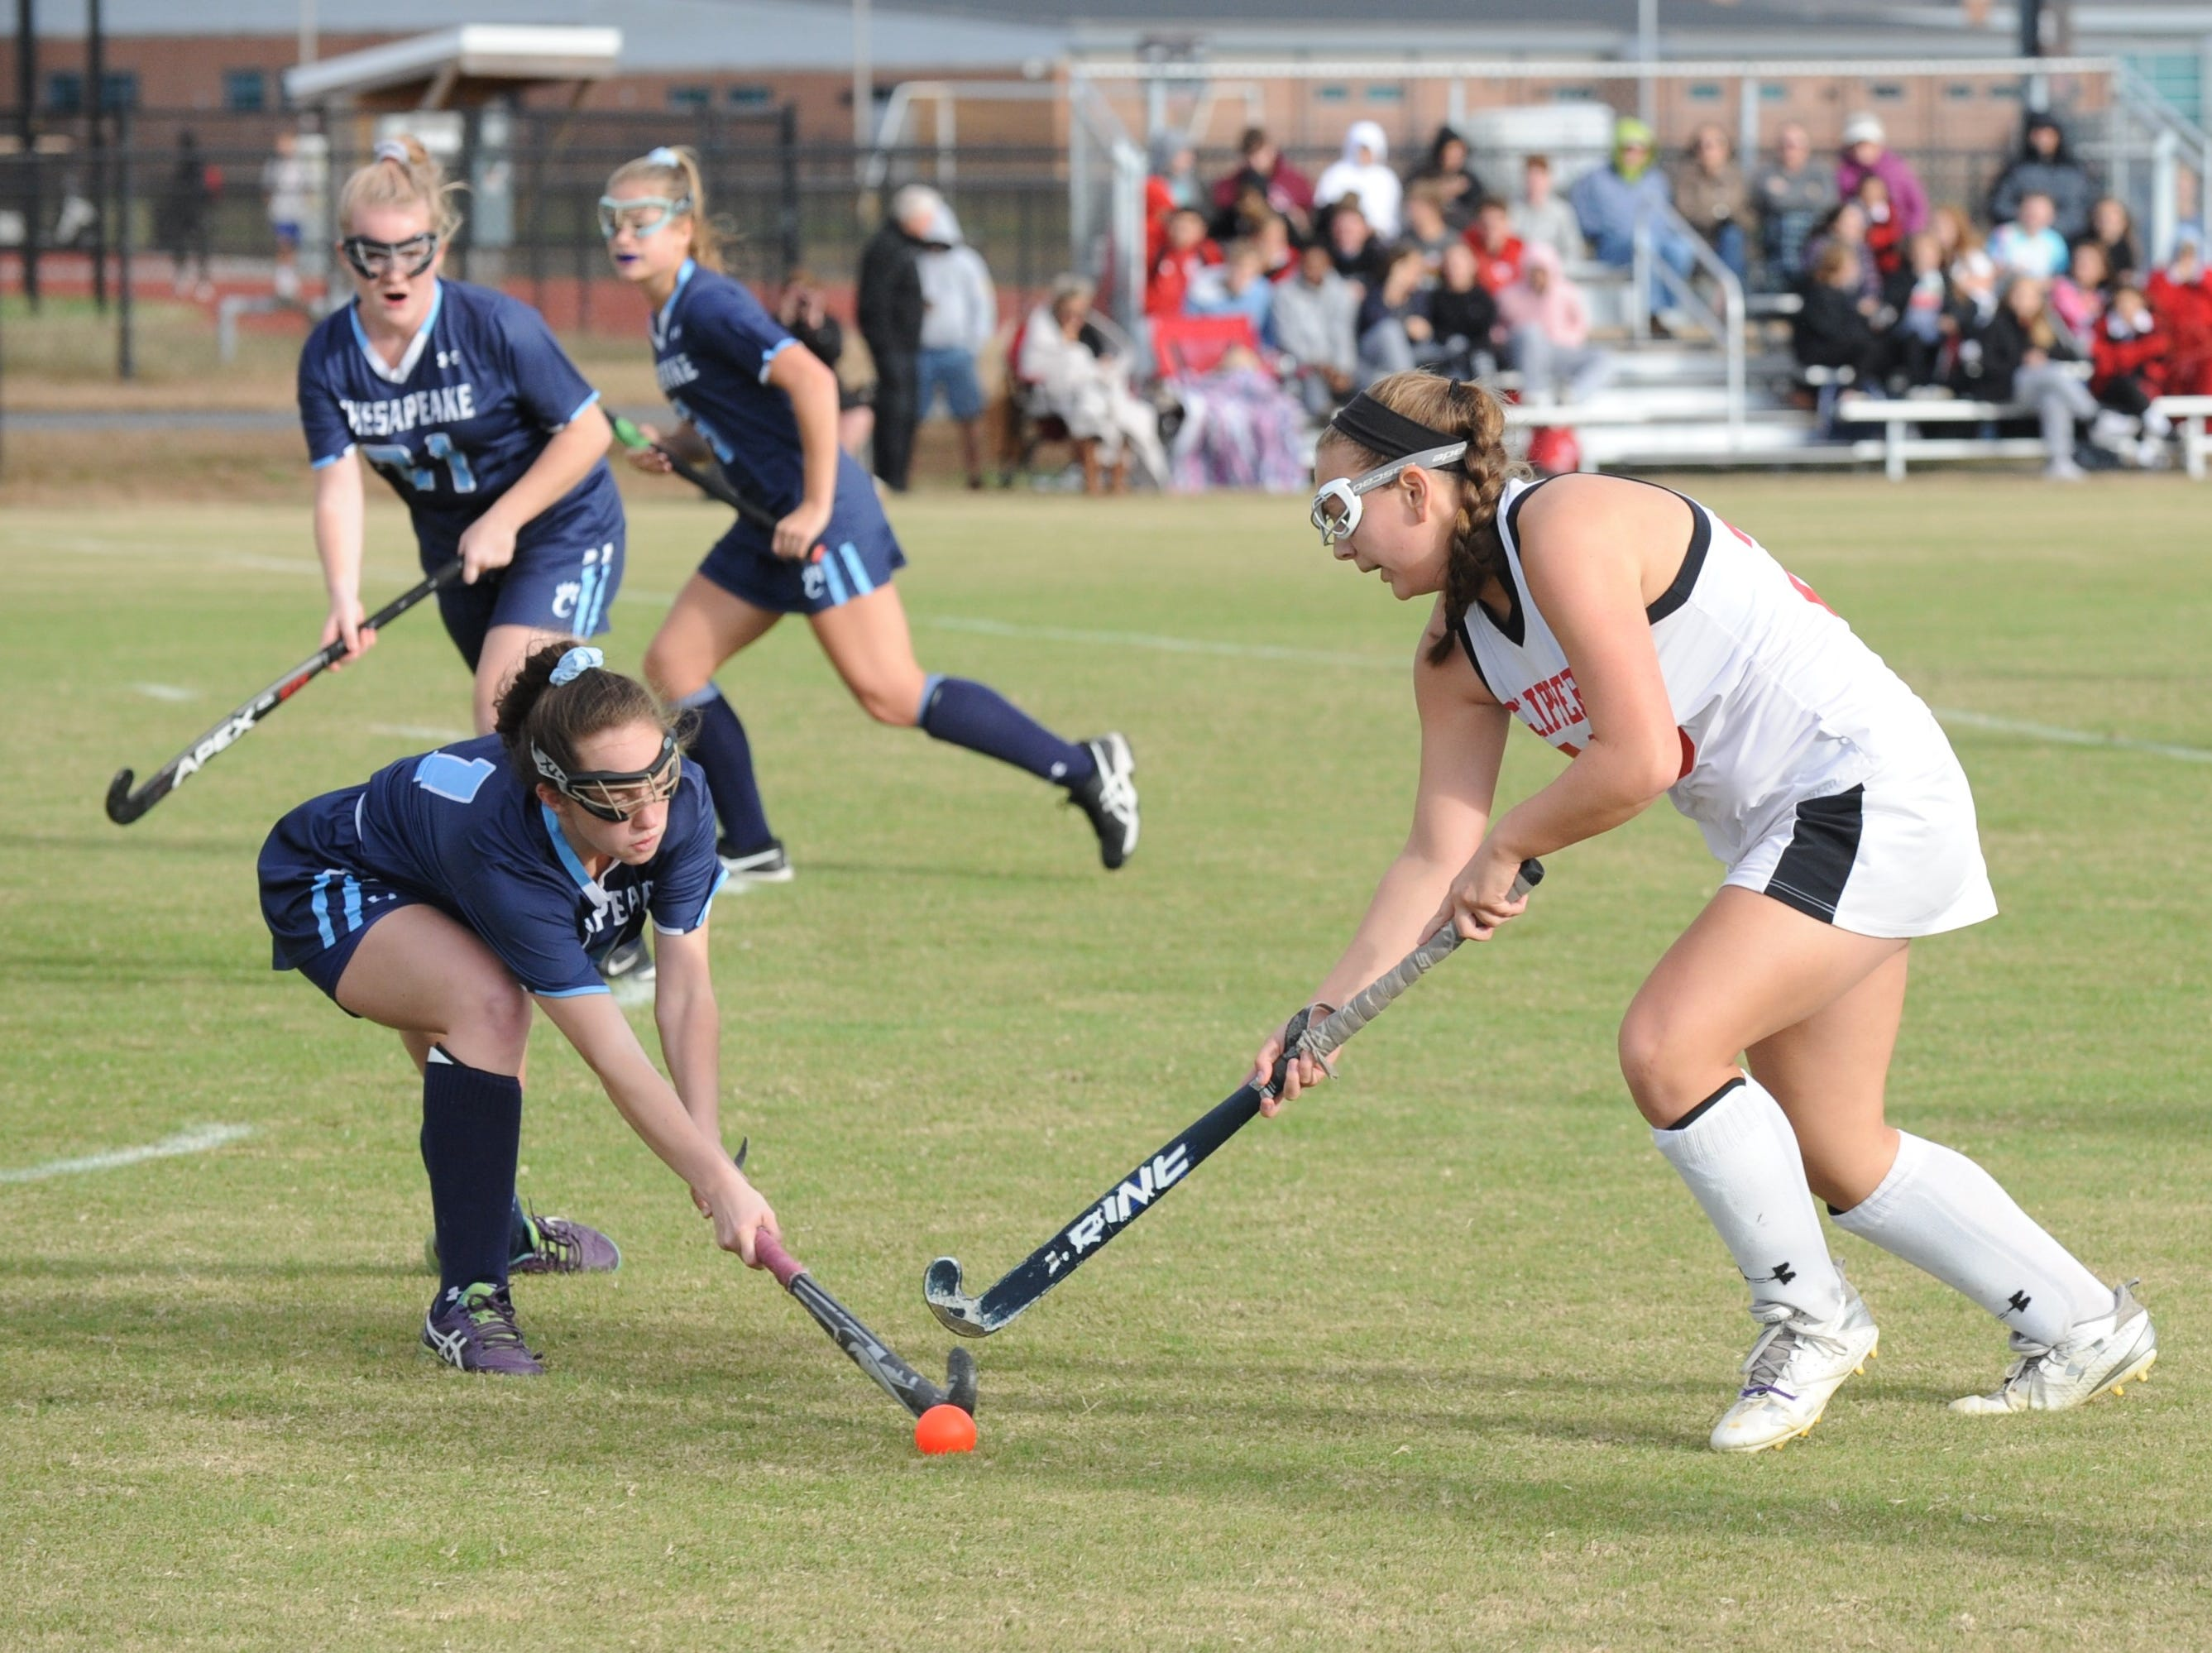 Bennett's Vicky Hoisington attempts to take the ball away from Chesapeake's Leah Evans on Monday, Oct. 29, 2018 in 3A playoff action. Chesapeake won the game, 1-0.